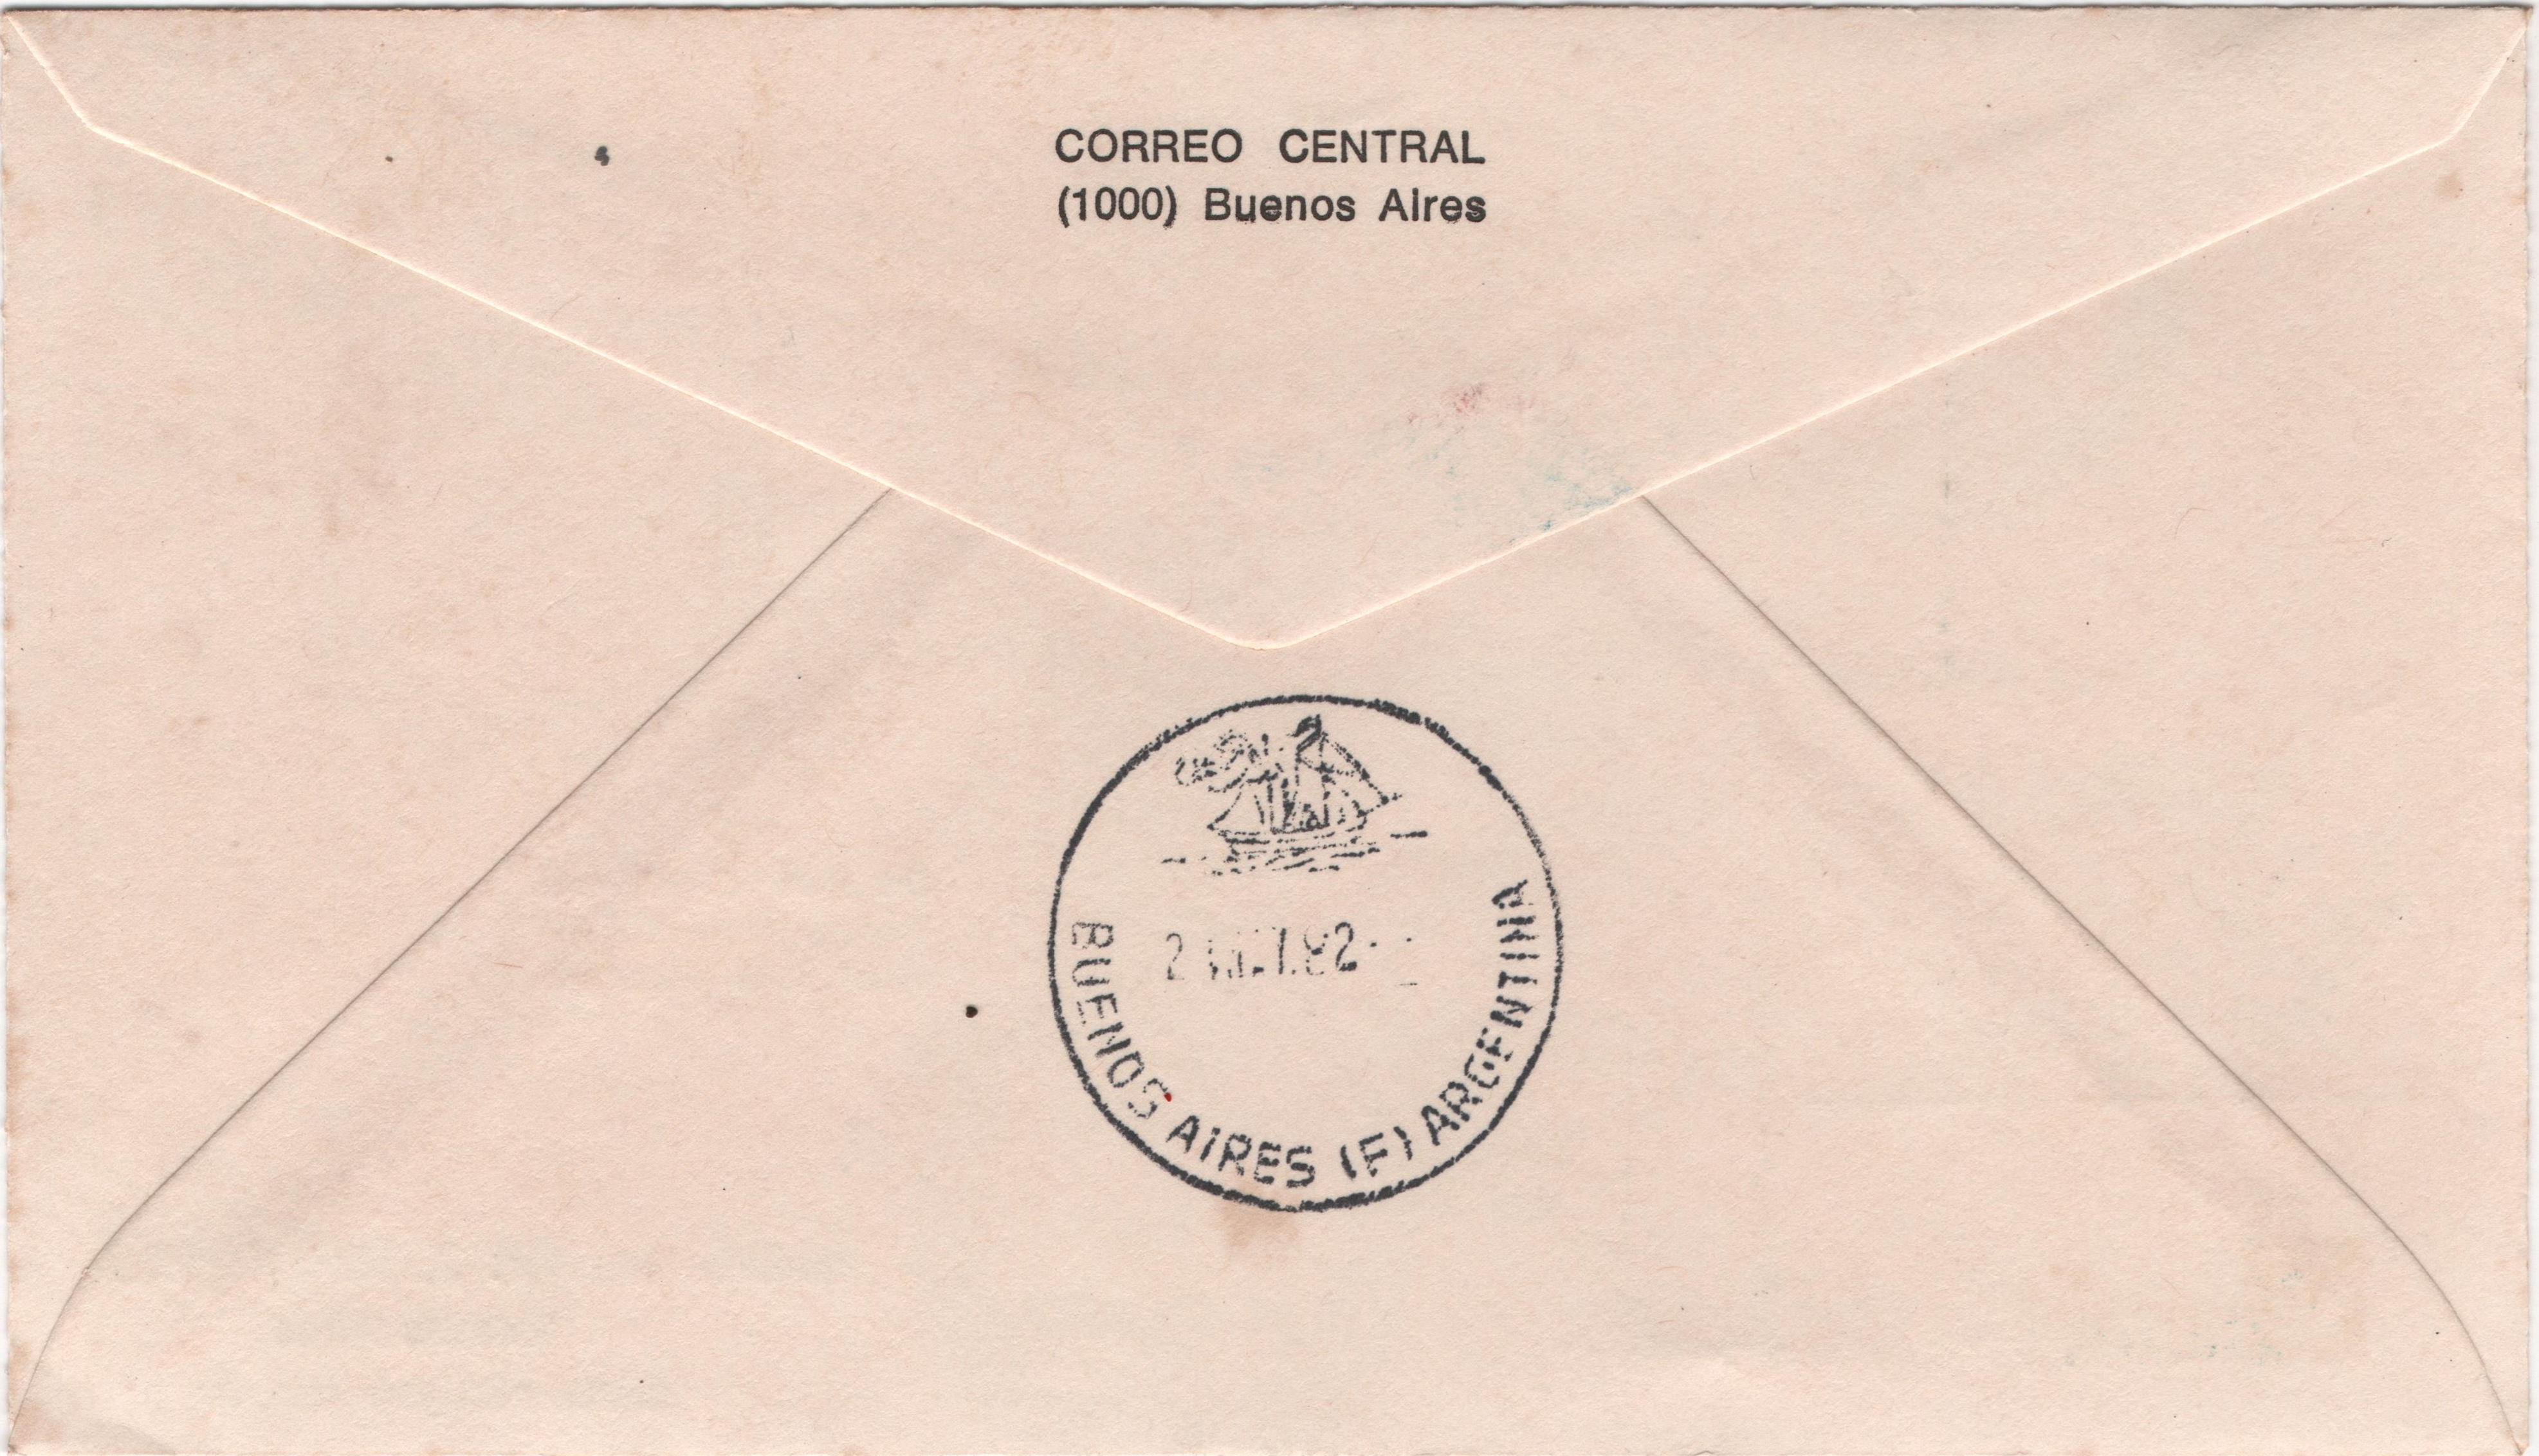 Cover bearing two copies of Scott #1338, the first in the lower center with a Buenos Aires first day of issue postmark of April 22, 1982 and the second in the upper right corner bears a Buenos Aires cancellation dated May 10, 1982. The upper center has a copy of Argentina Scott #1307 - a 2000-peso stamp issued on June 13, 1981, to commemorate the 20th anniversary of the Antarctic Treaty and portraying the icebreaker Almirante Irizar - with a postmark from the Falklands (Malvinas) dated May 16. The back of the cover bears a Buenos Aires postmark of May 2.